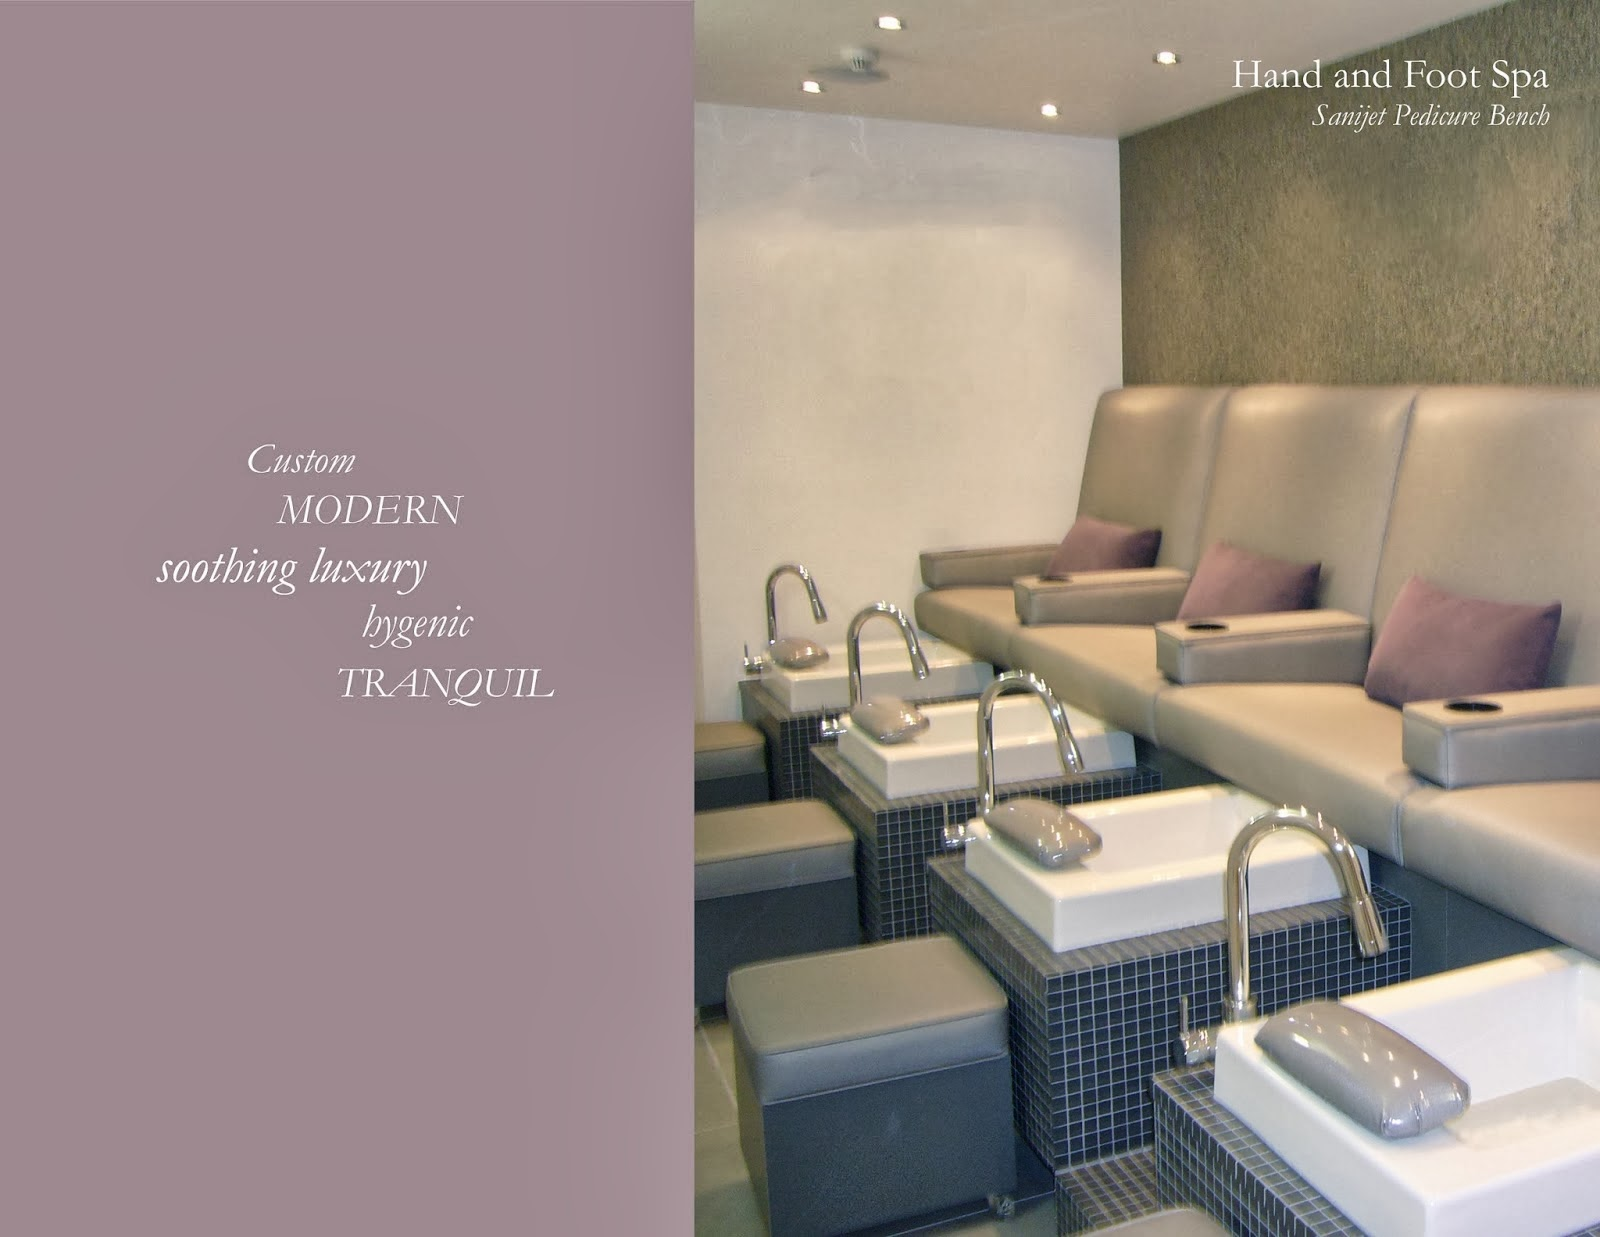 Michele Pelafas  Nail Spa   Salon Design We have extensive experience in the design and development of nail spa and  salon interiors